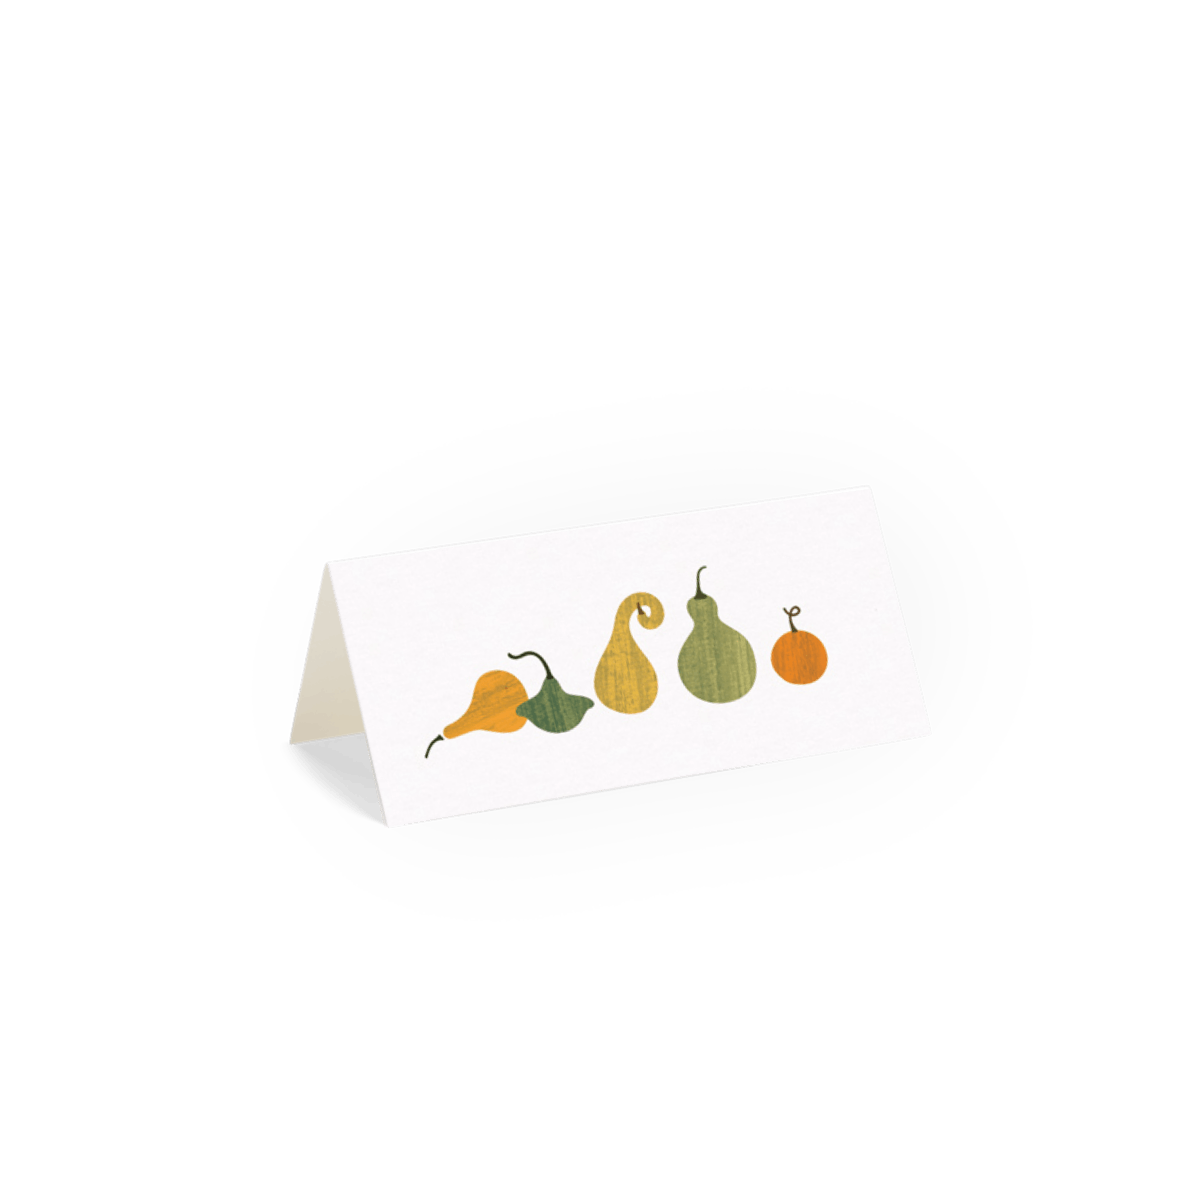 Https%3a%2f%2fwww.papier.com%2fproduct image%2f12516%2f15%2fthanksgiving gourds 3152 back 1476970581.png?ixlib=rb 1.1